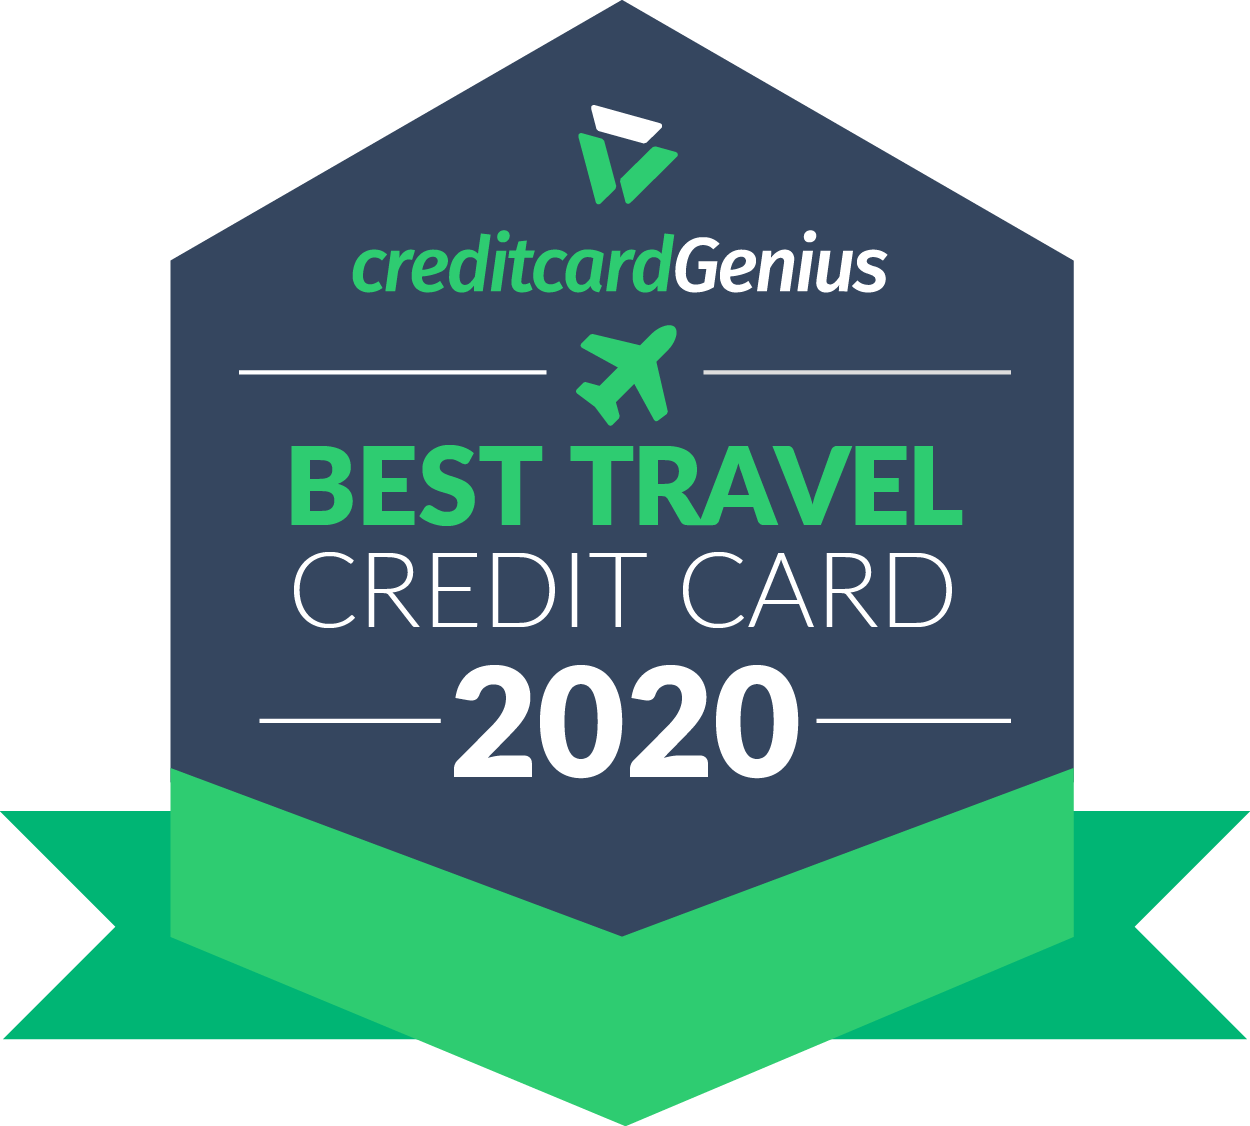 Best travel credit card in Canada for 2020 award seal